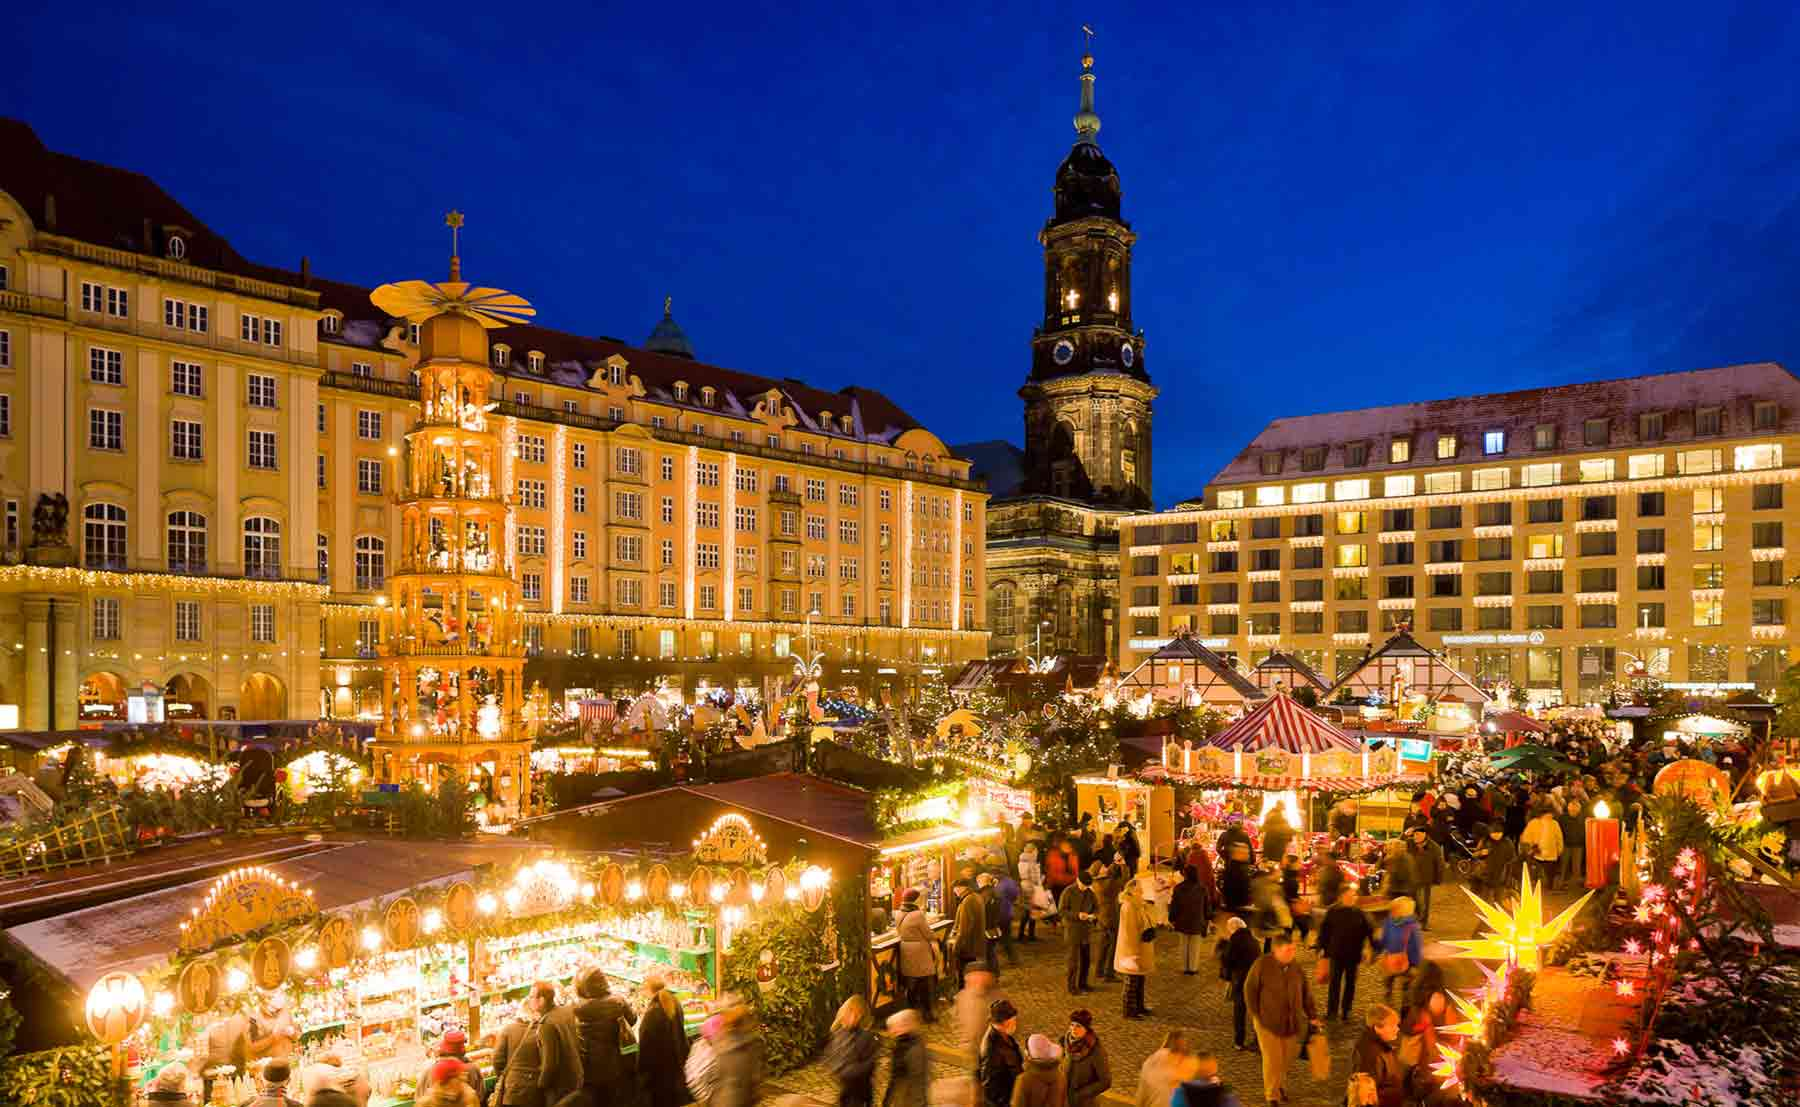 Weihnachtsmarkt In Dresden.It S The Most Wonderful Time Of The Year Unsere Teambrenner